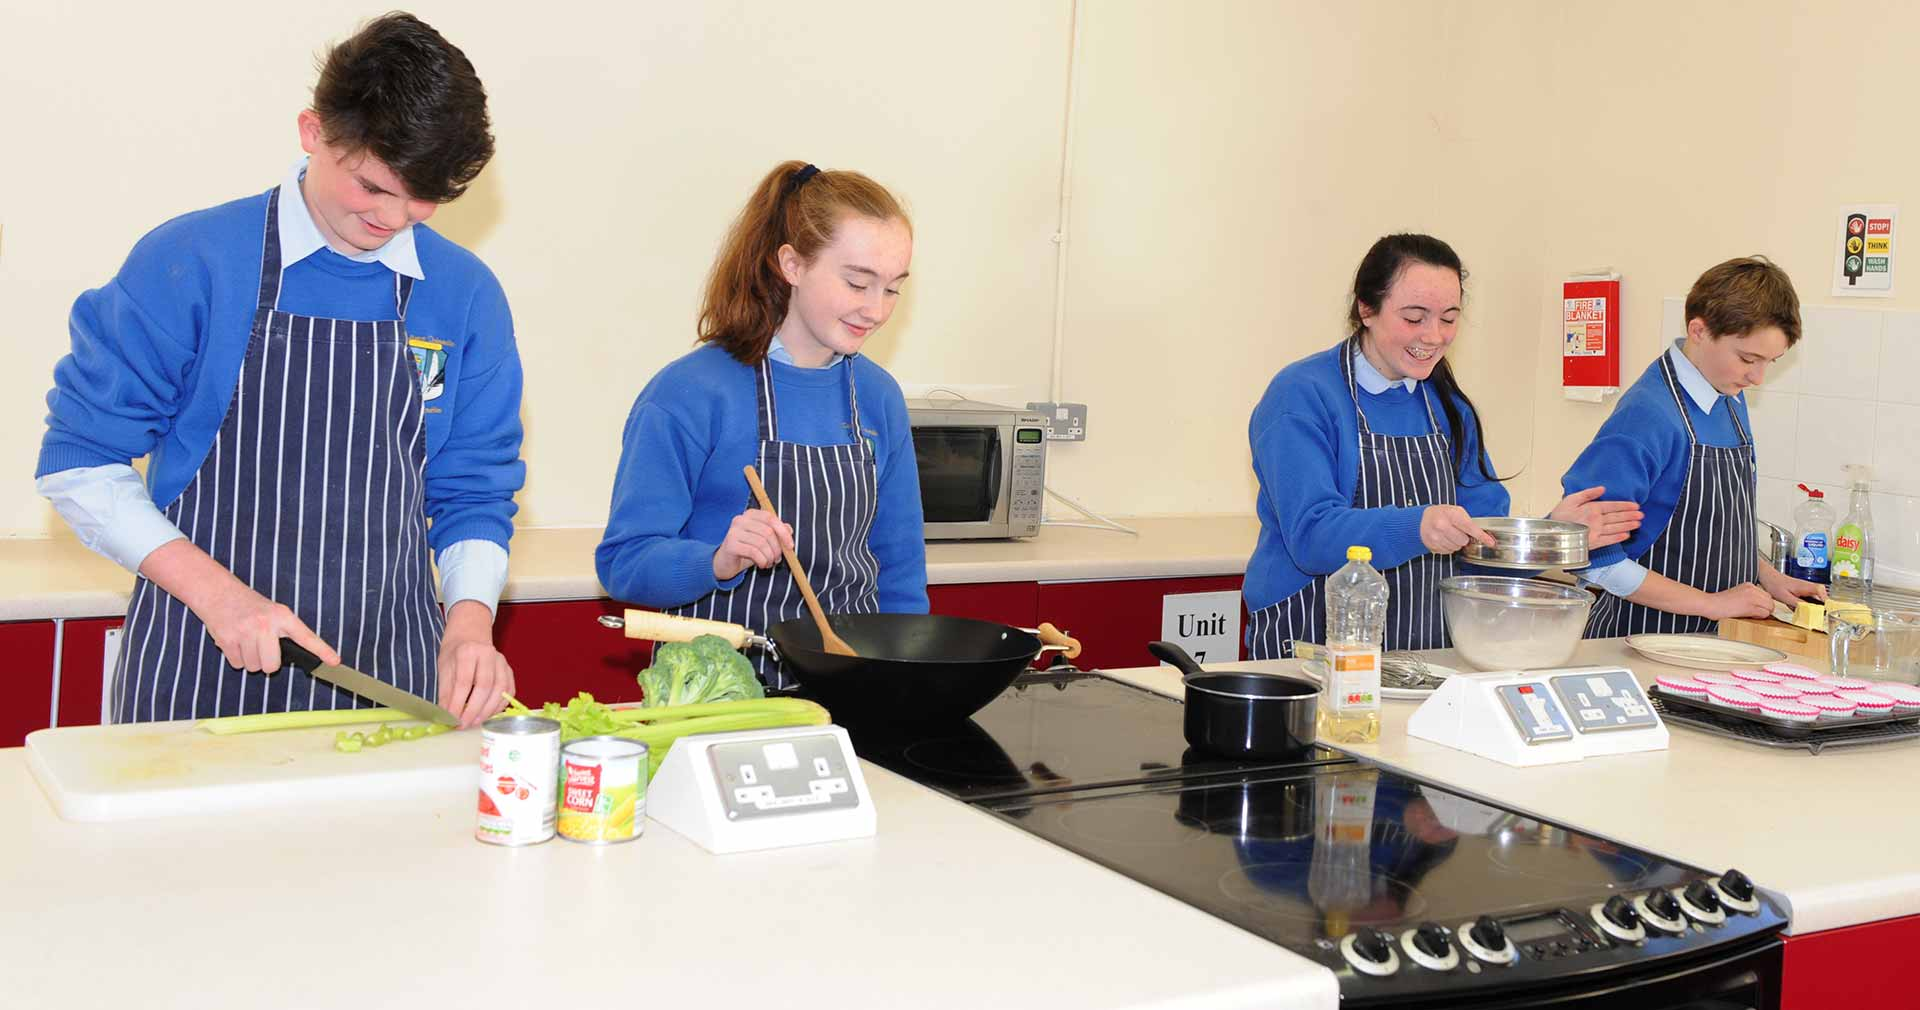 Colaiste Chiarain students coooking